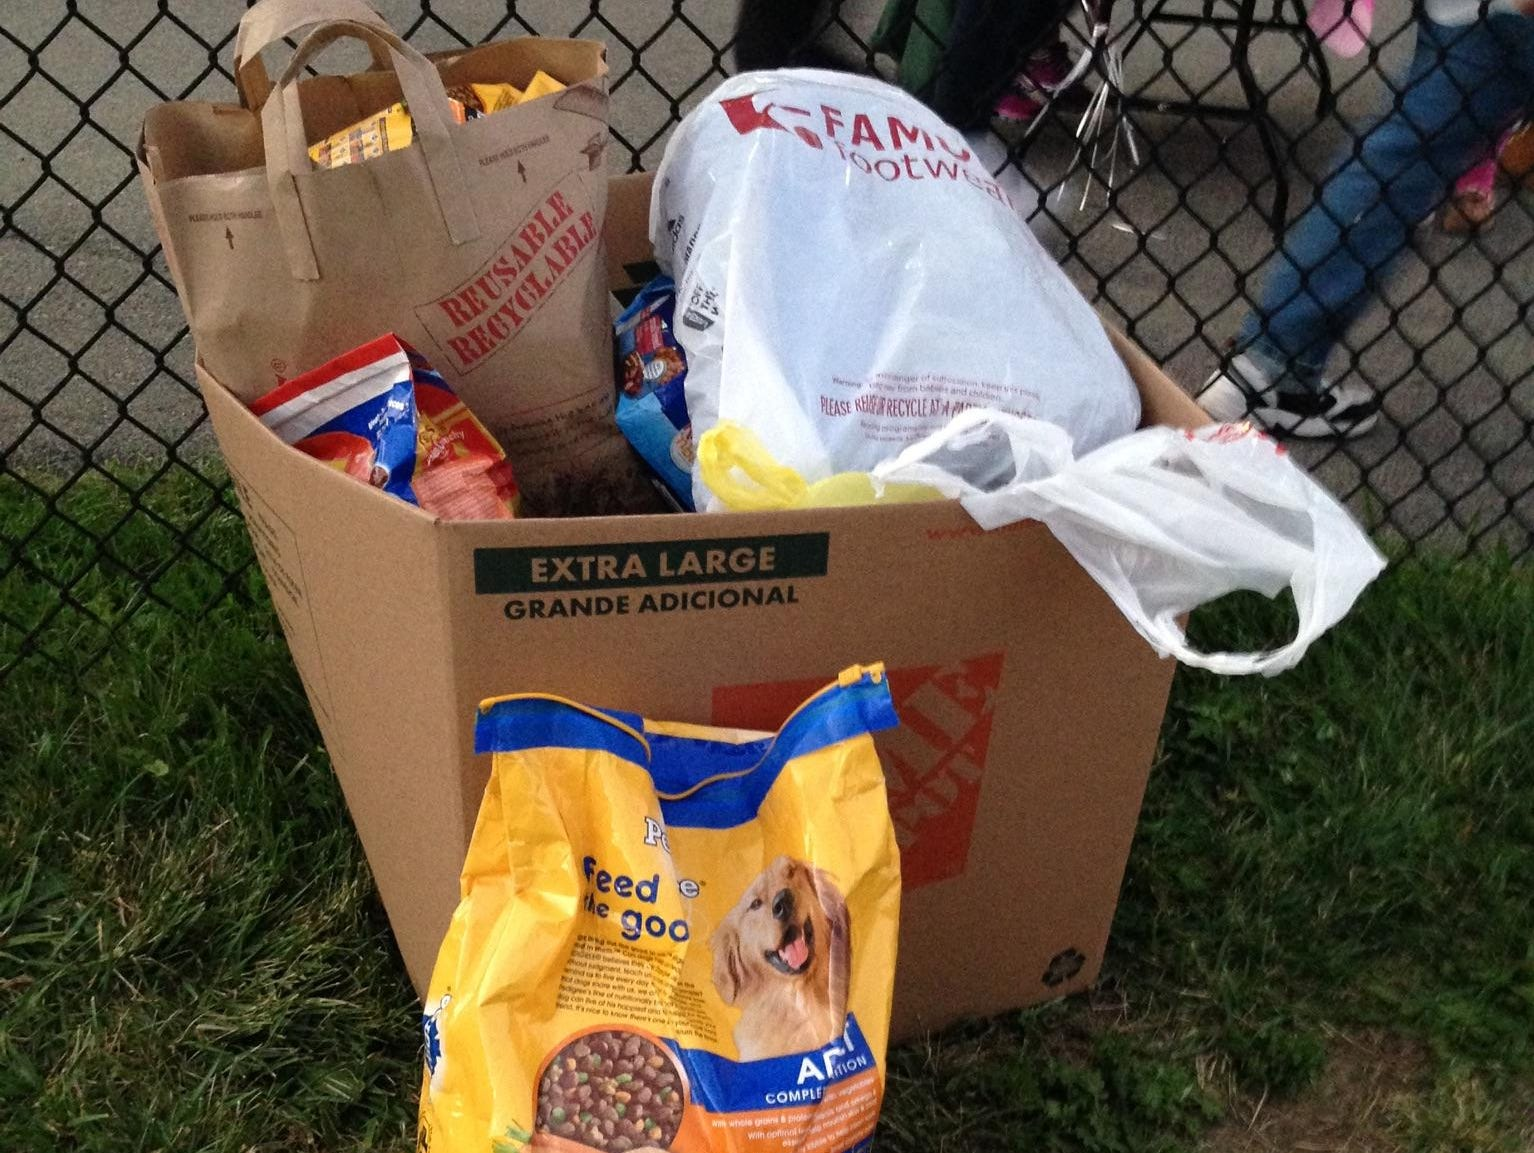 Some of the goods that were collected during Friday's Ketcham-Yorktown field hockey game that will go to the SPCA of Westchester